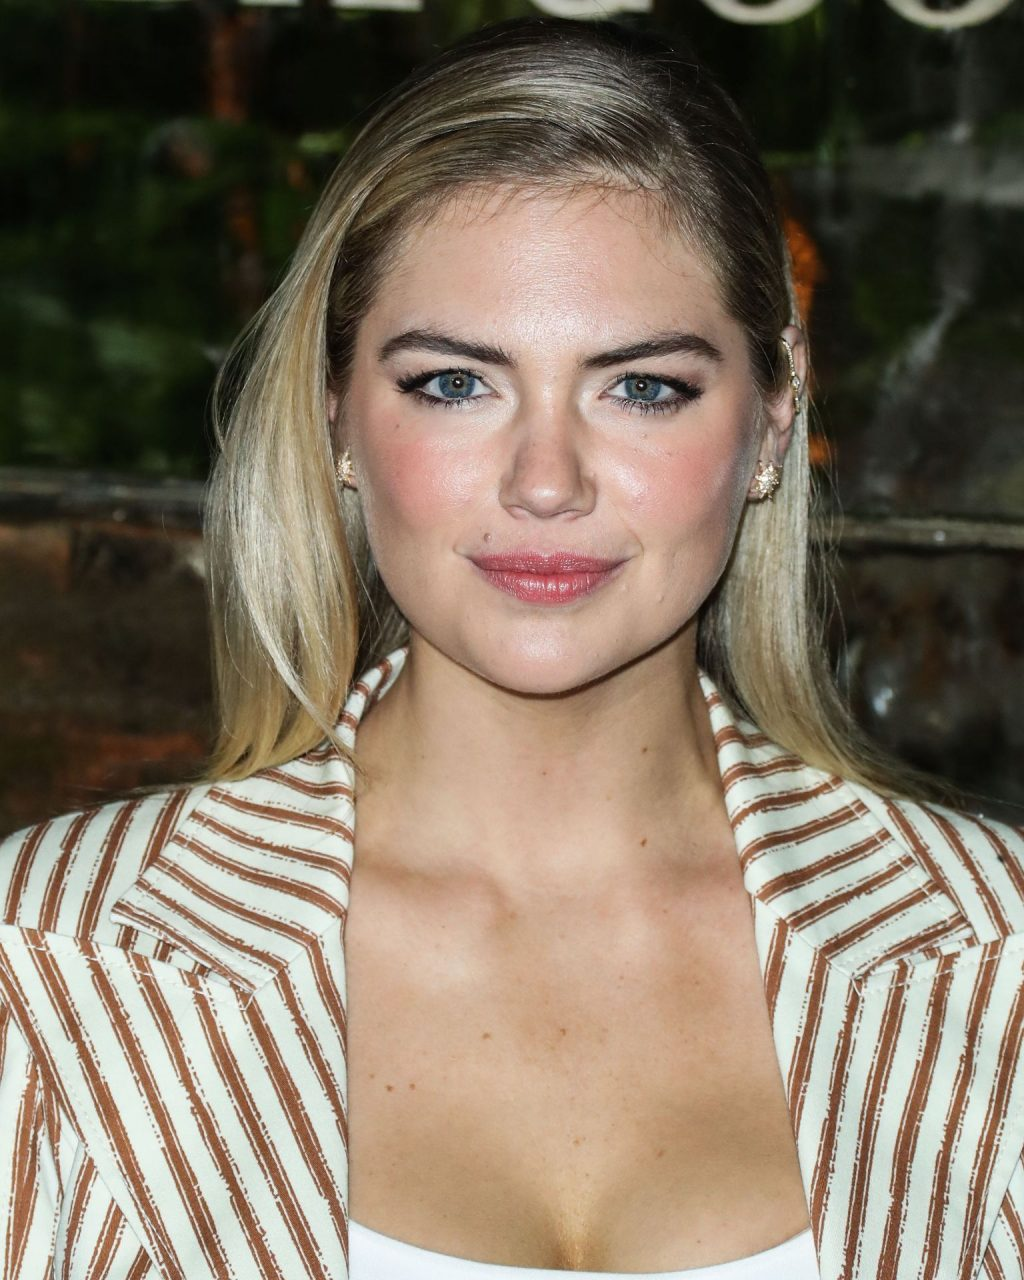 Kate Upton Sexy The Fappening Blog 99 1024x1280 - Kate Upton Attends Canada Goose And Vogue Cocktails & Conversations (104 Photos)